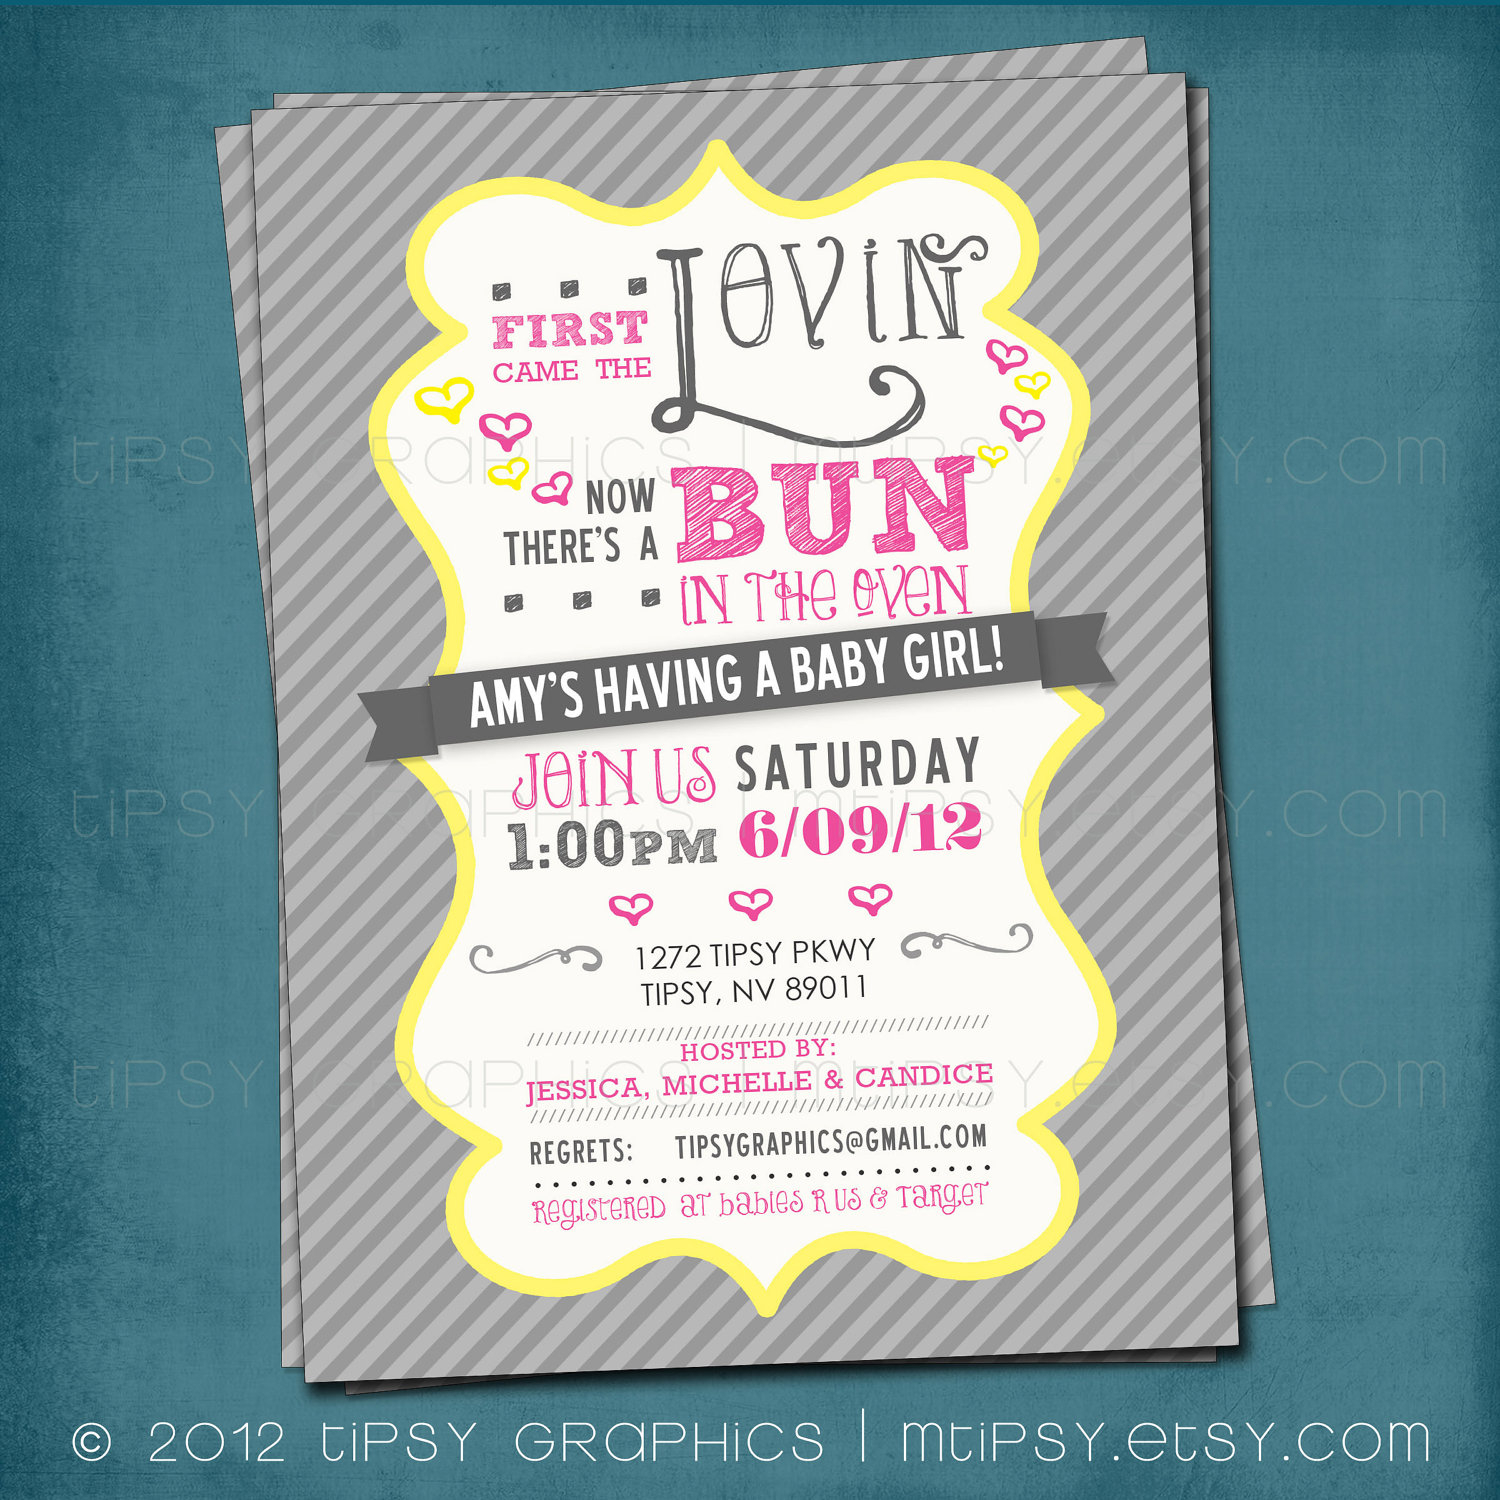 First Came The Lovin Bun In The Oven Ba Shower Invite within sizing 1500 X 1500